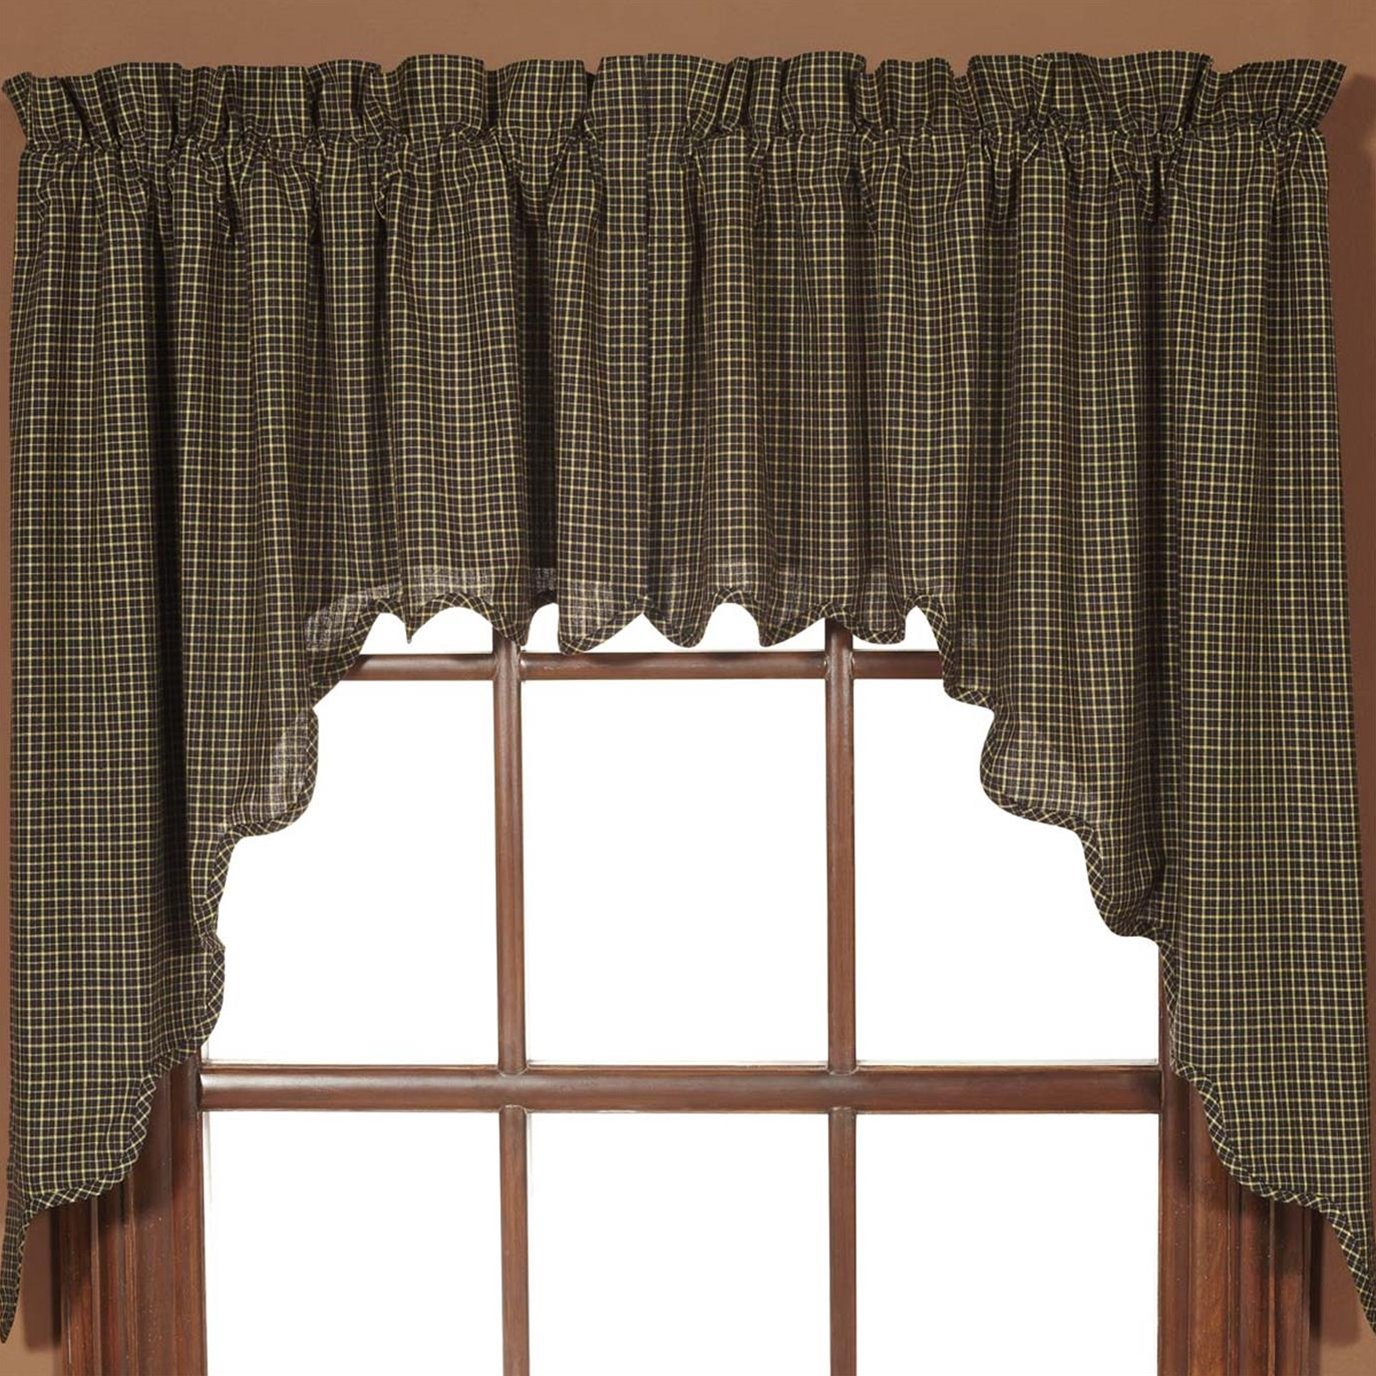 Kettle Grove Plaid Swag Scalloped Set Of 2 36X36X16 Pertaining To Check Scalloped Swag Sets (Photo 14 of 20)